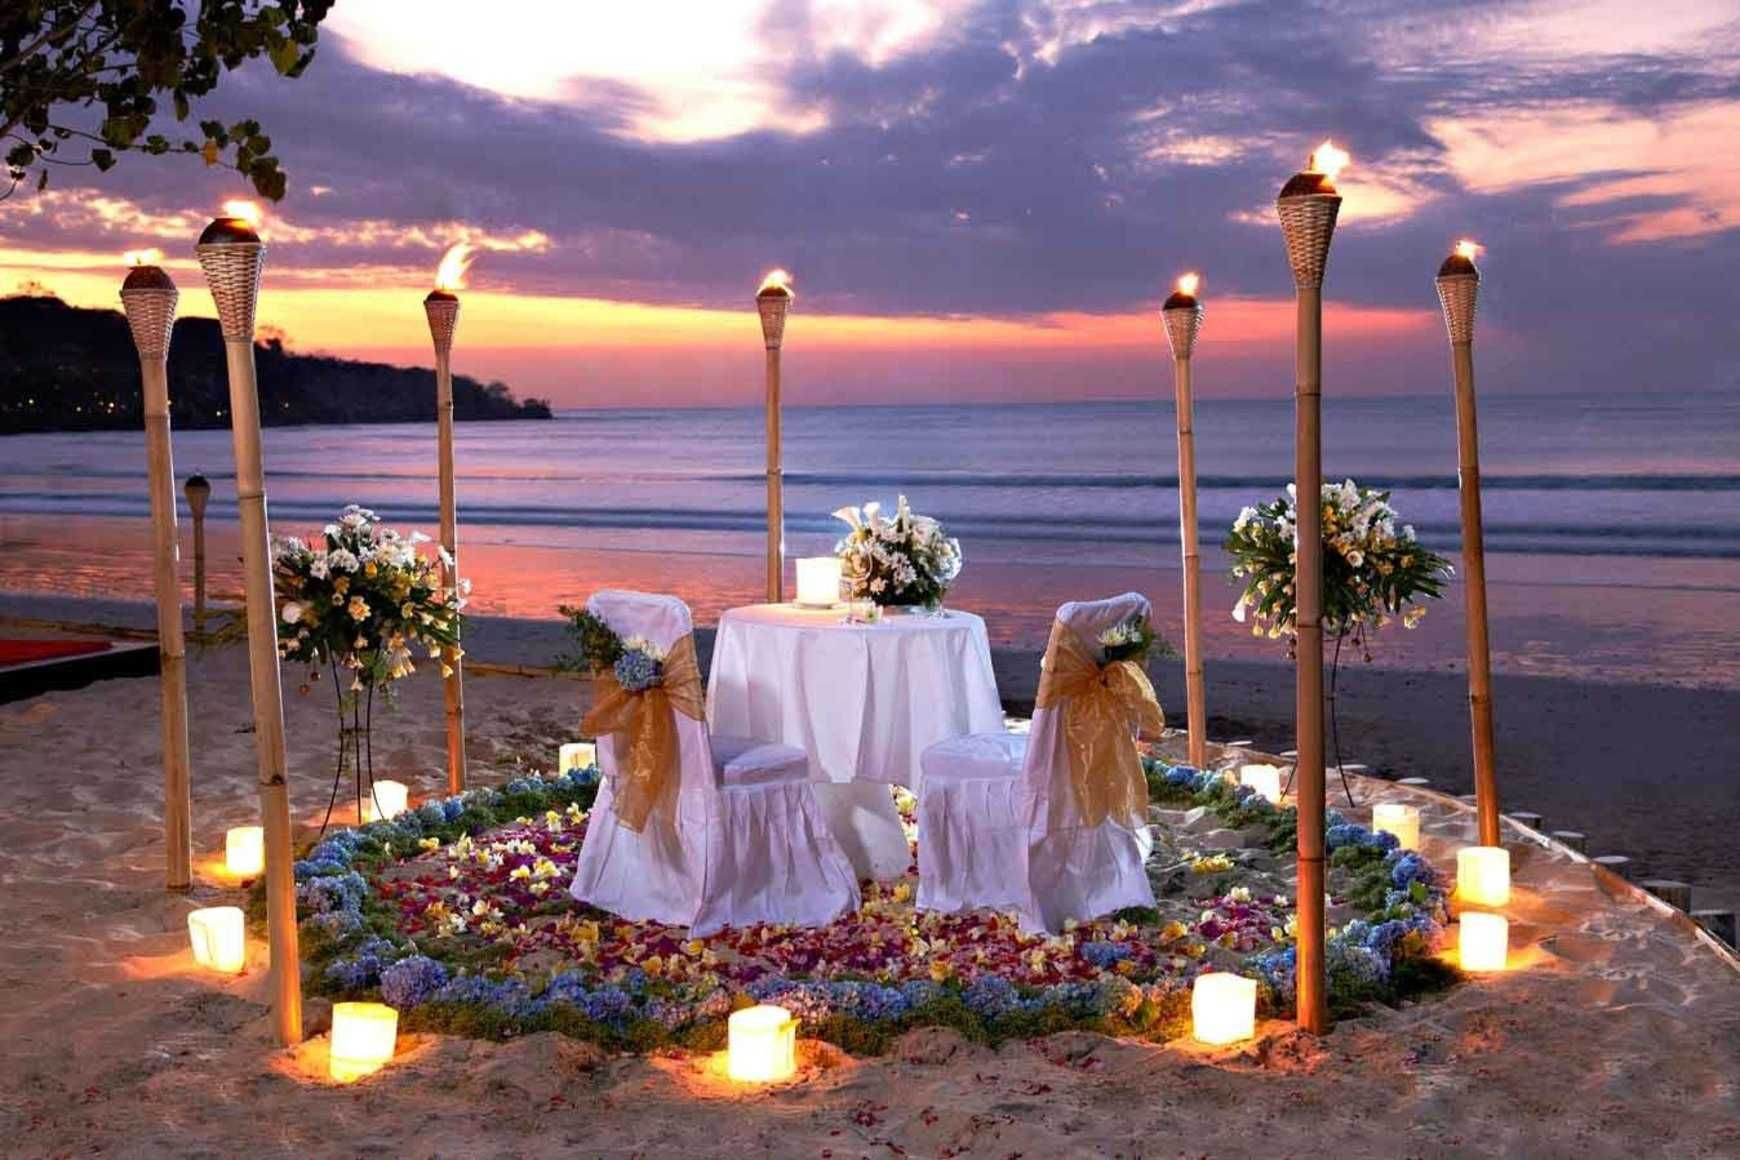 Bali wedding venues on the beach  Pin by Wendell Alba on The Beach  Pinterest  Jimbaran and Romantic